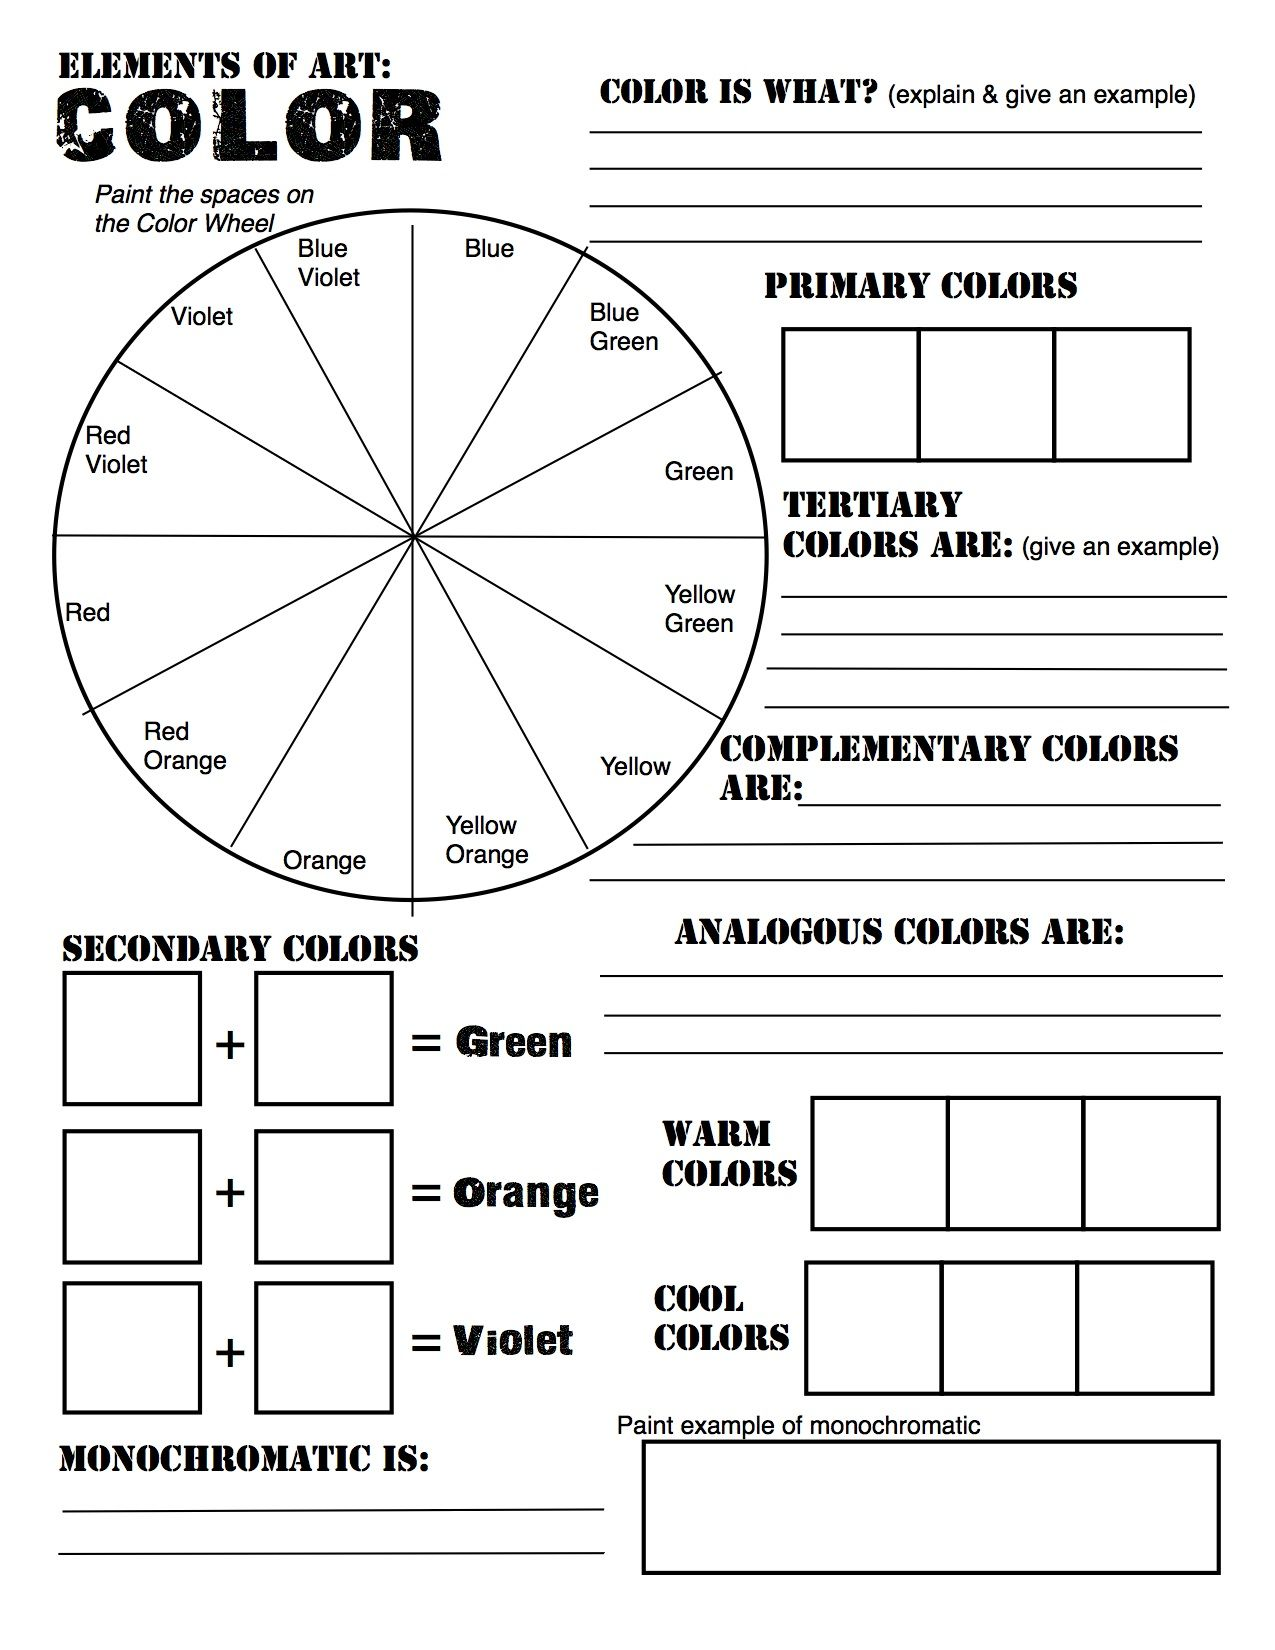 Color theory review sheet made for studio in art revised from http